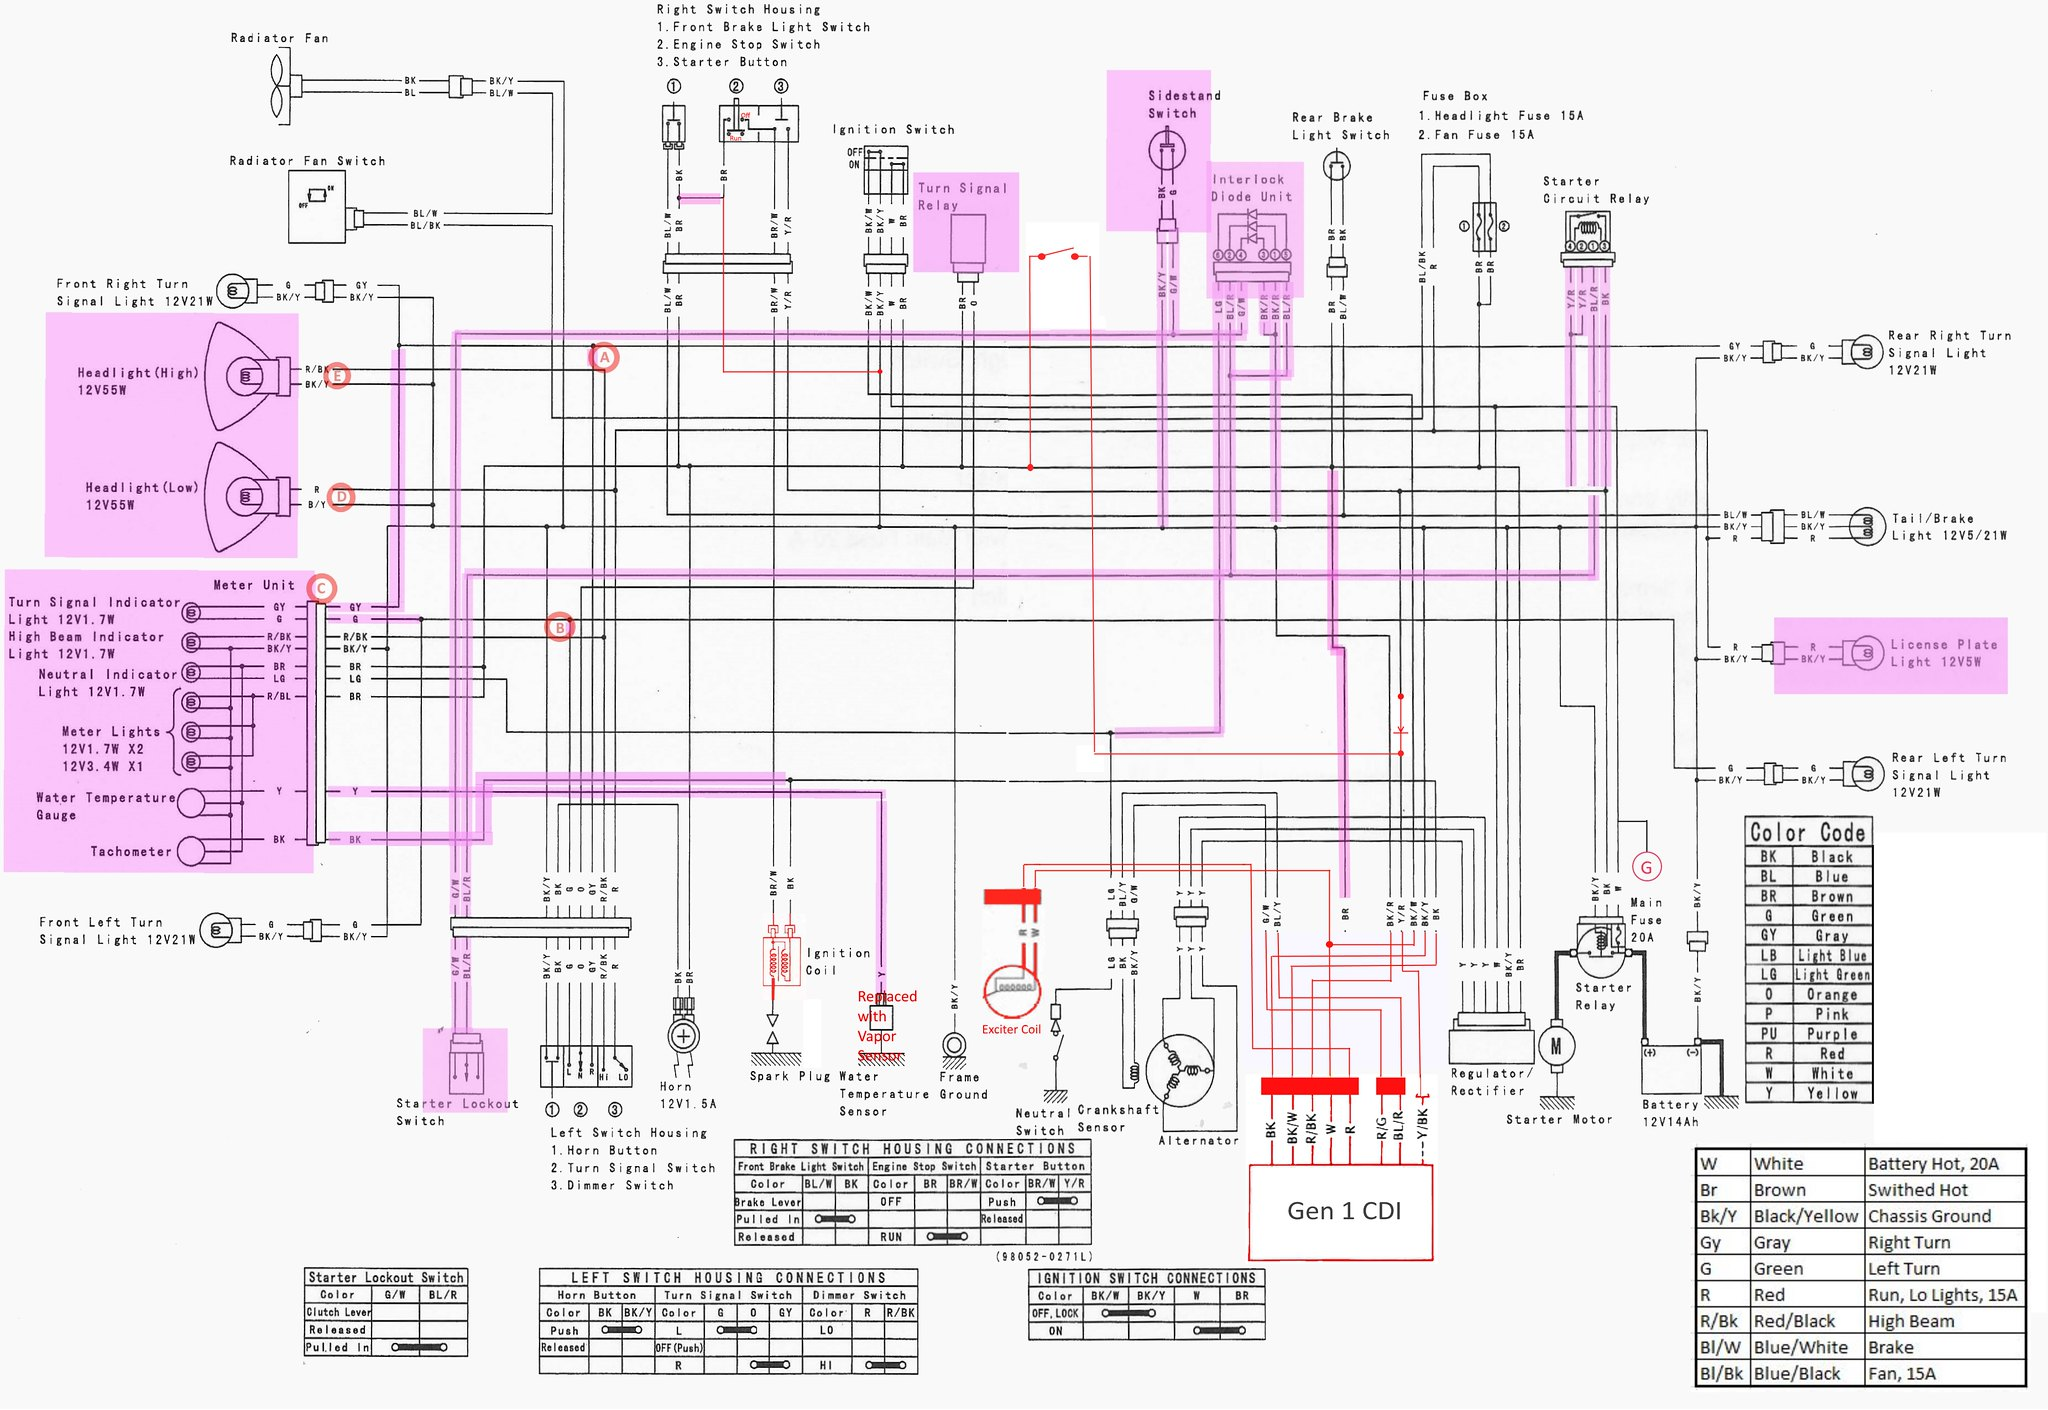 Hyundai Veracruz Wiring Diagram besides Klr 650 Wiring Diagram also Honda Fit Timing Diagram likewise 92 Toyota Pickup Fuel Pump Location moreover Polaris Sportsman 500 Fuse Box. on 2008 klr650 fuel filter location diagram